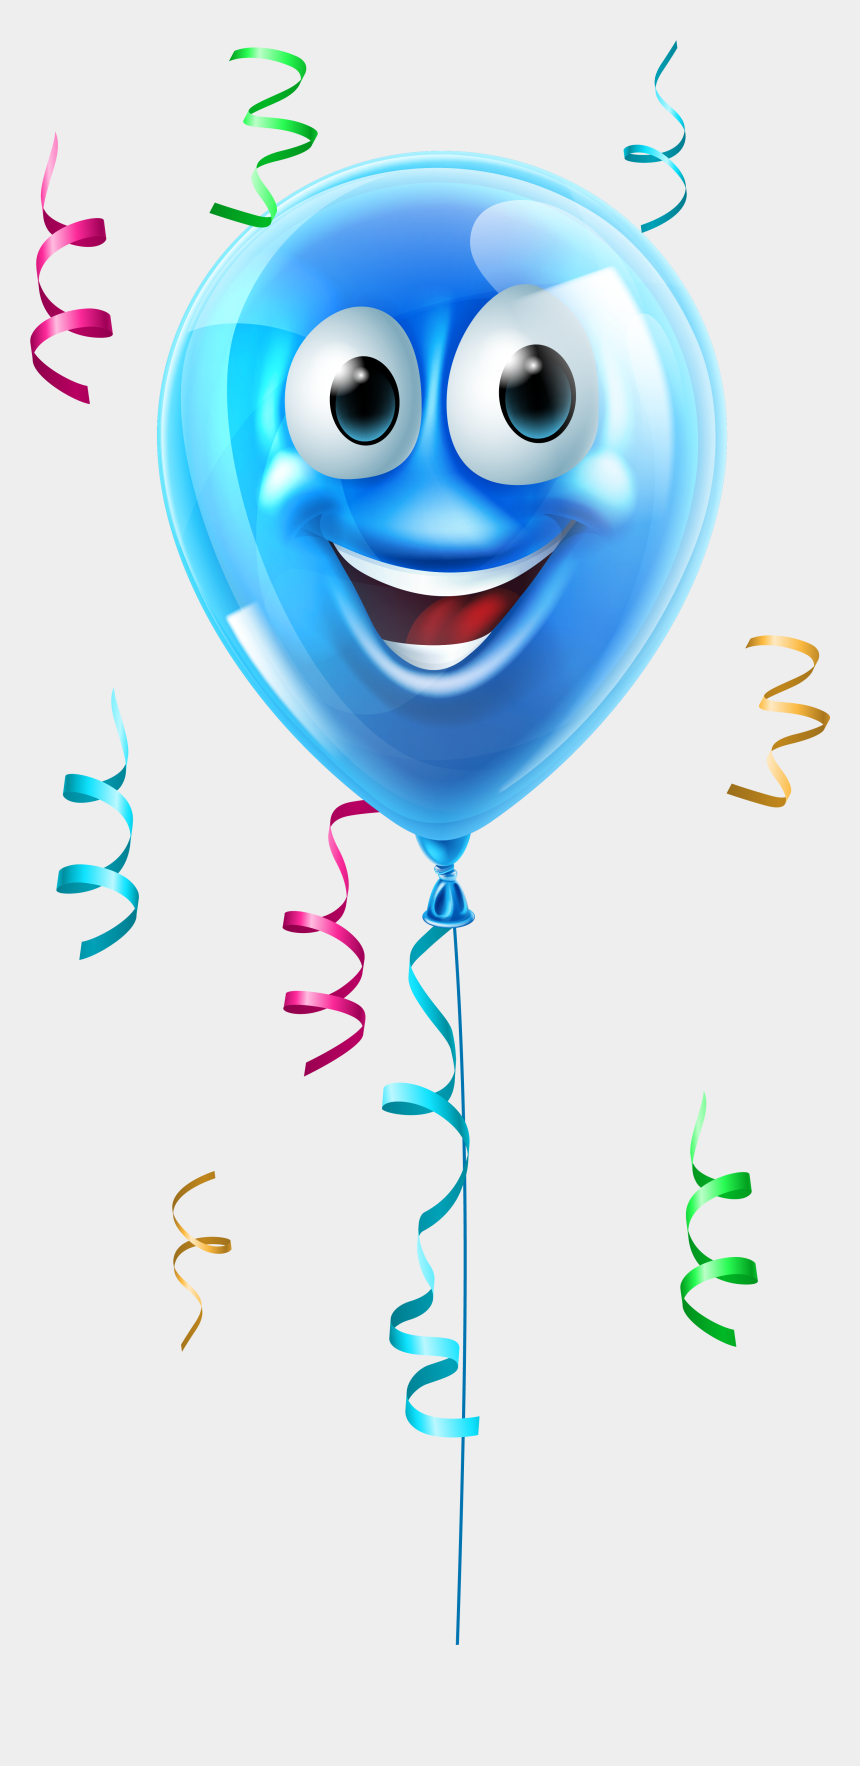 clipart birthday balloon, Cartoons - Balloon Emoji Png - Cartoon Balloon With Face